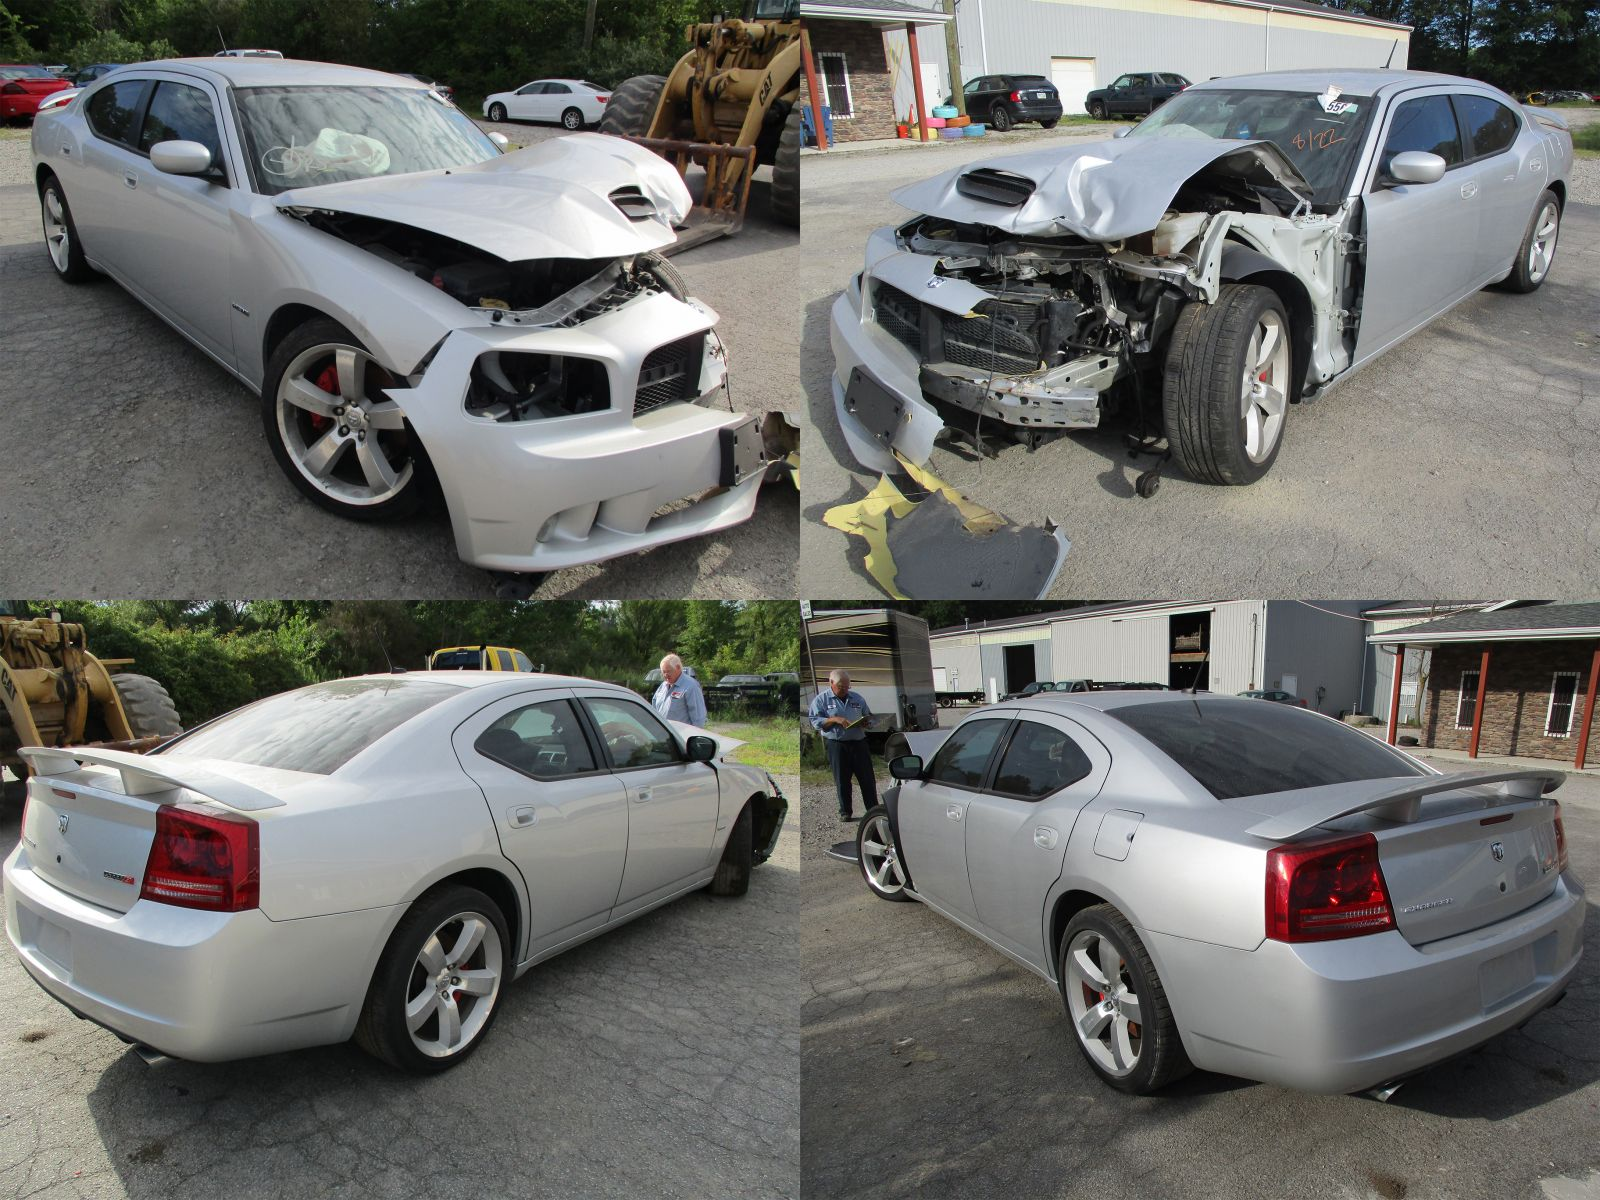 Wrecked Cars For Sale >> 2008 Silver Dodge Charger SRT-8 - Cleveland Power & Performance